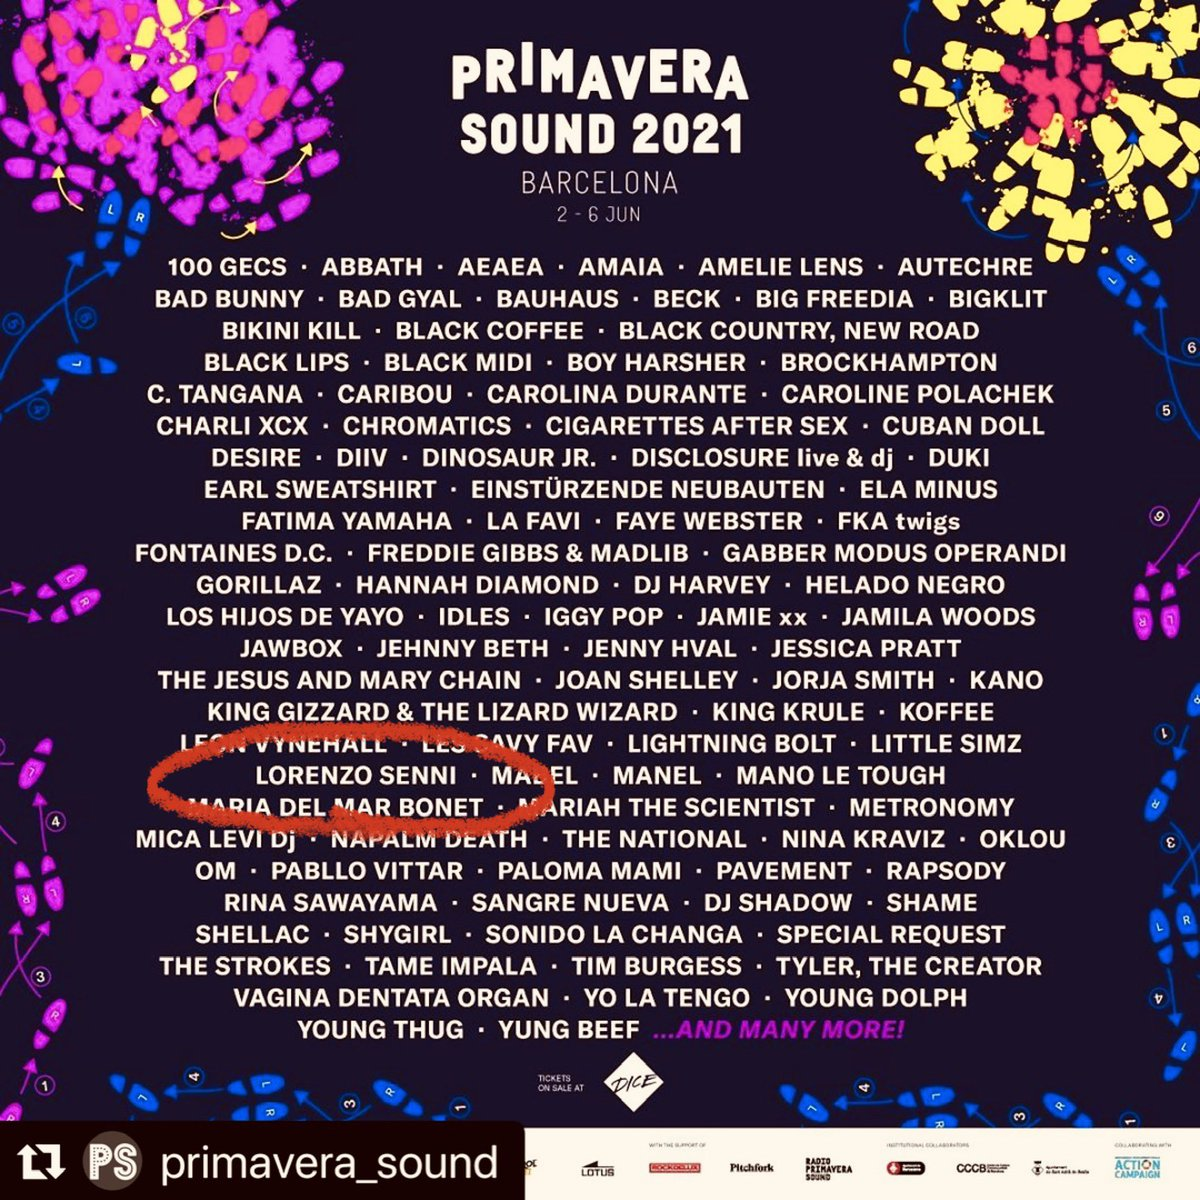 re-confirm @Primavera_Sound and looking forward to see many legendary bands and exciting acts! CANT WAIT!